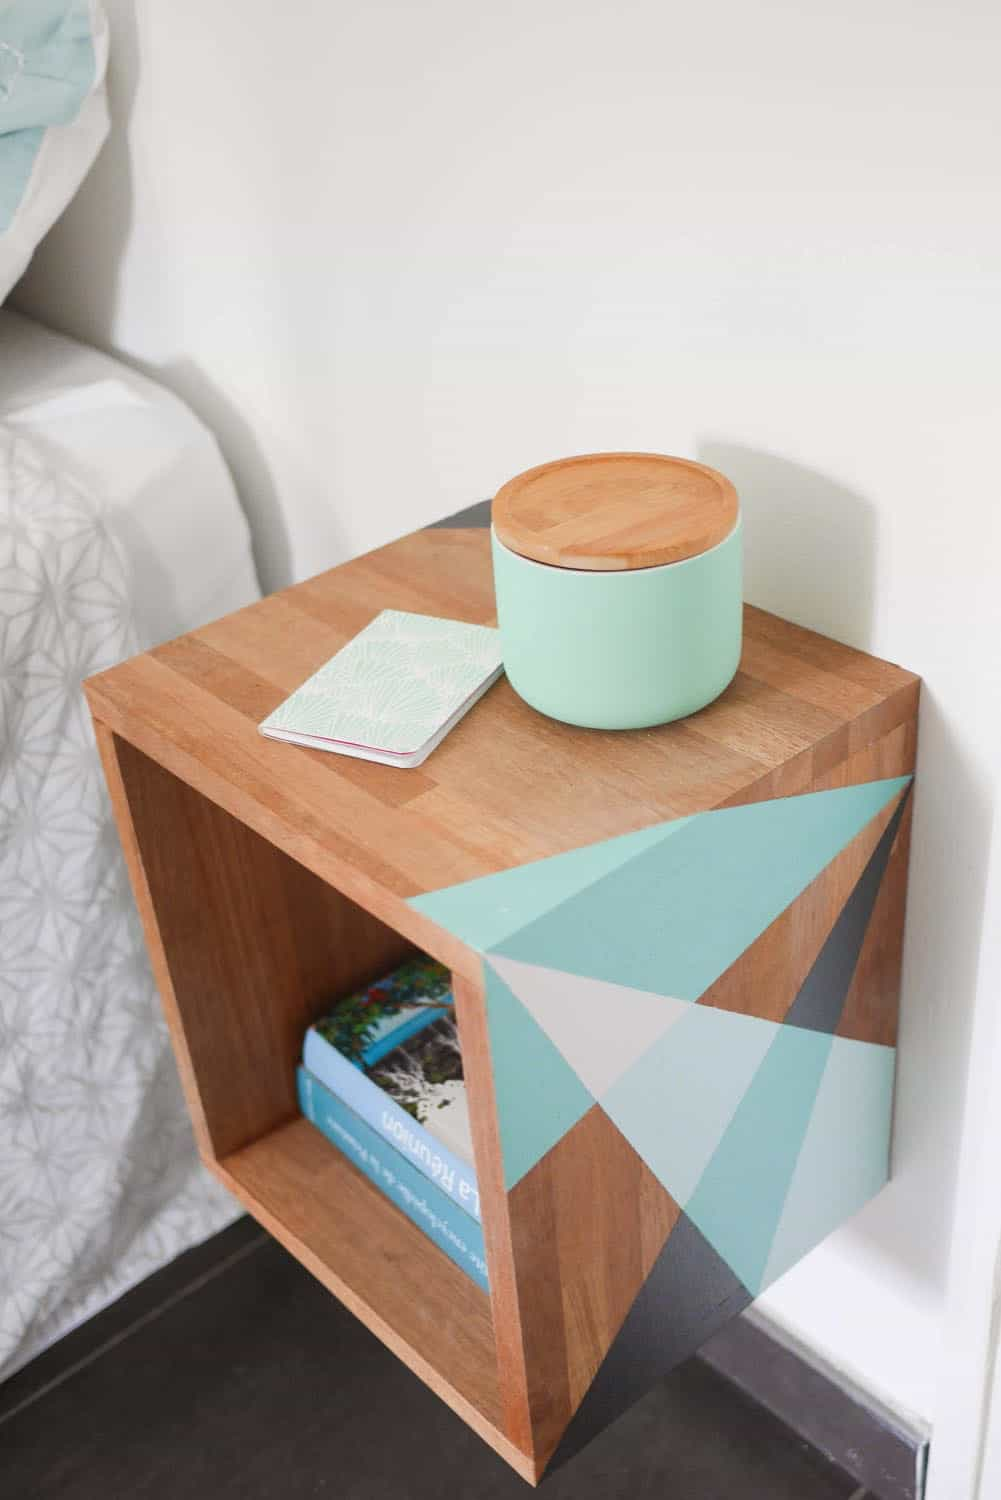 DIY Table de nuit graphique 13 7. FLOATING DIY NIGHTSTAND WITH TEAL COLOR ACCENTS